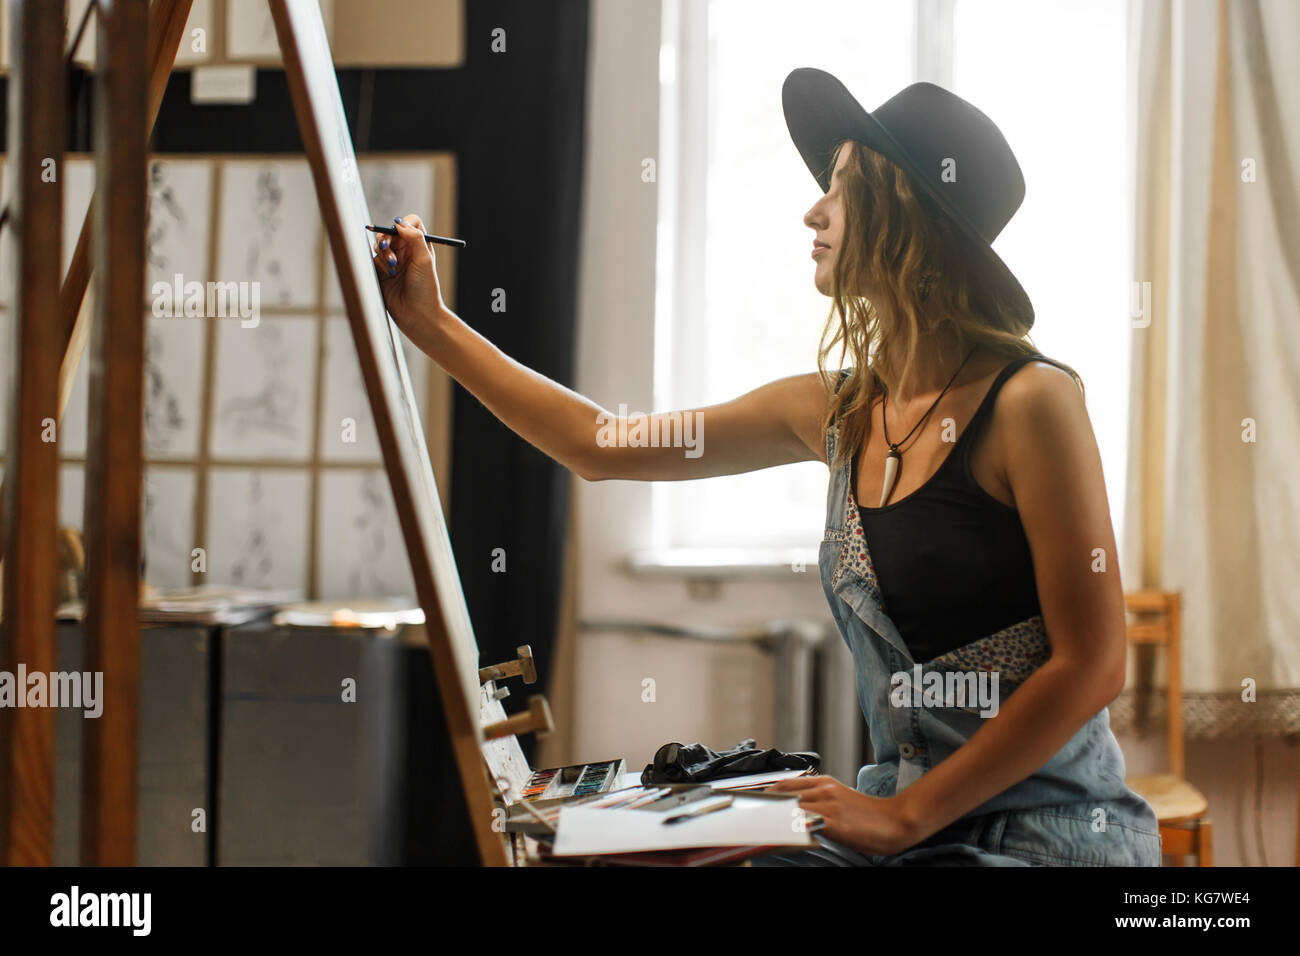 Artist's Drawing Process in the Studio - Stock Image